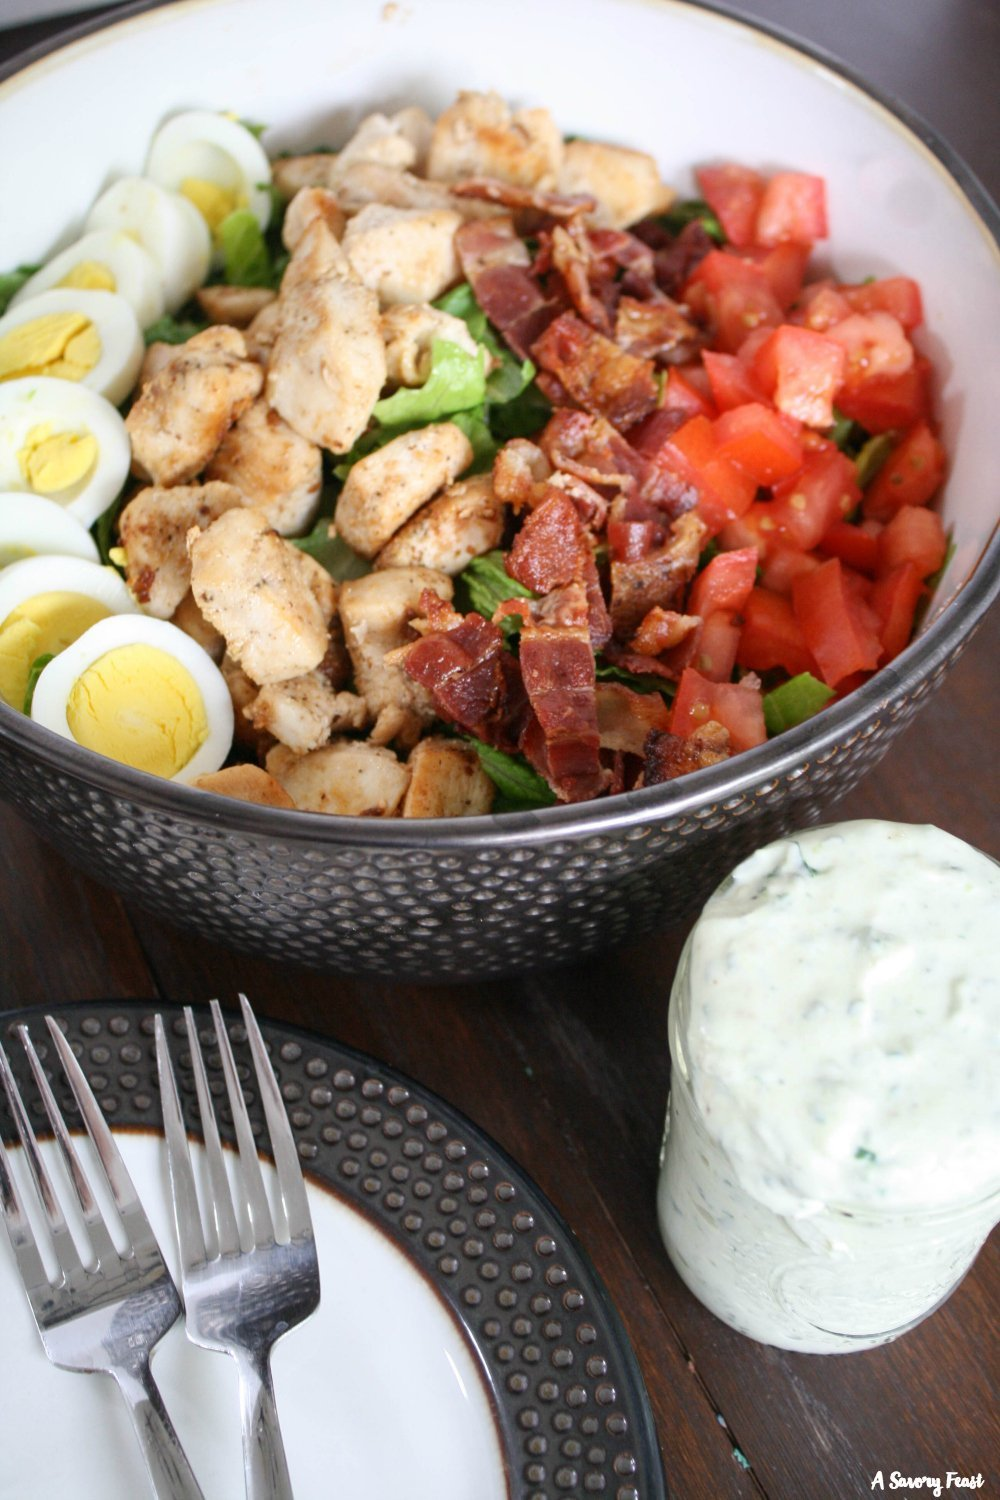 Chicken Cobb Salad with Homemade Avocado Dressing recipe